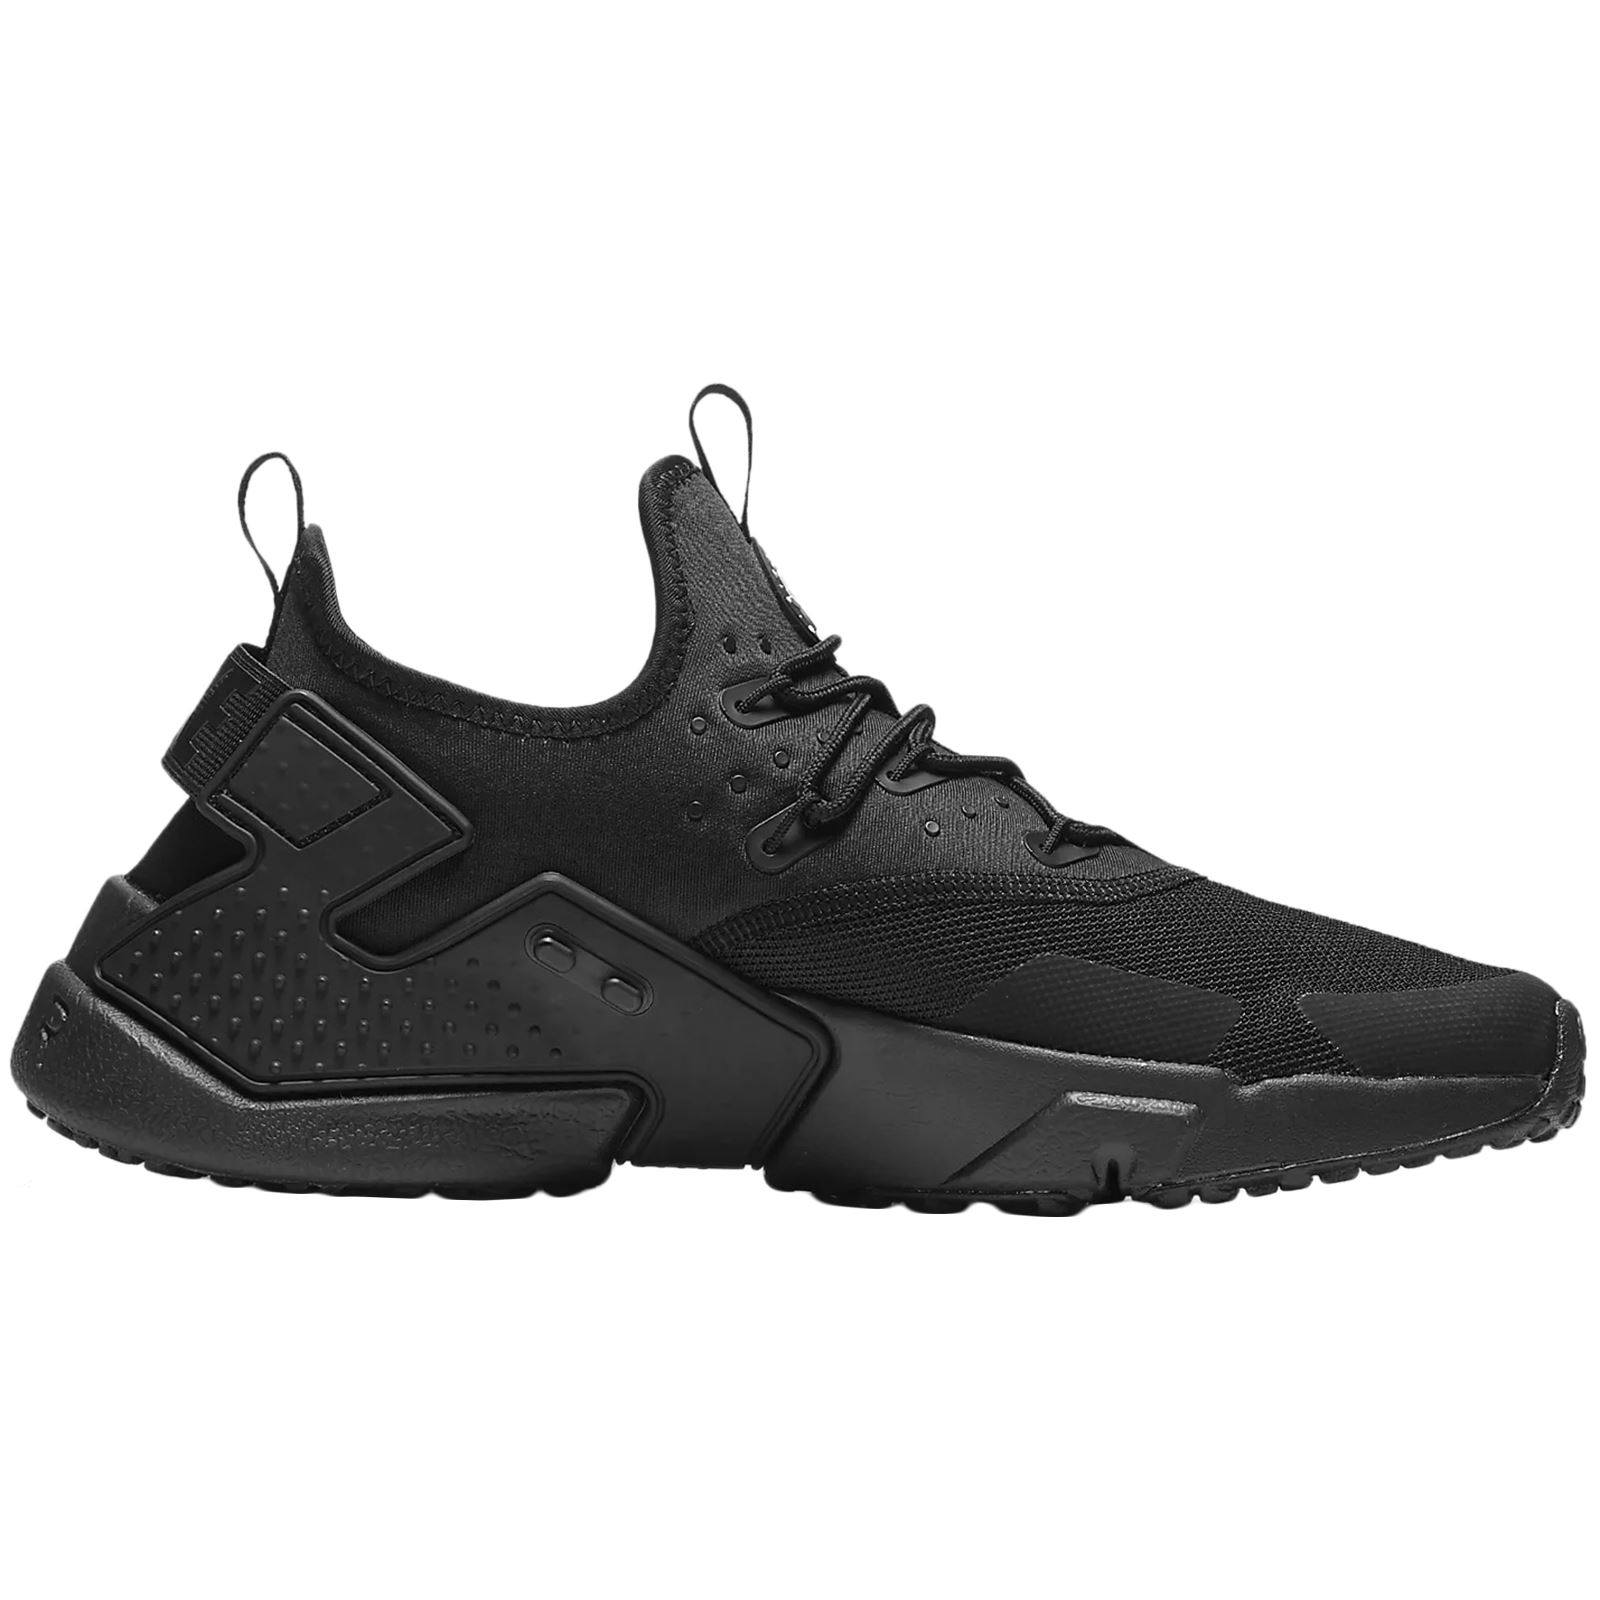 Nike Air Huarache Slip-On Drift Textile Slip-On Huarache Low-Top Running Sneakers Mens Trainers f038e6